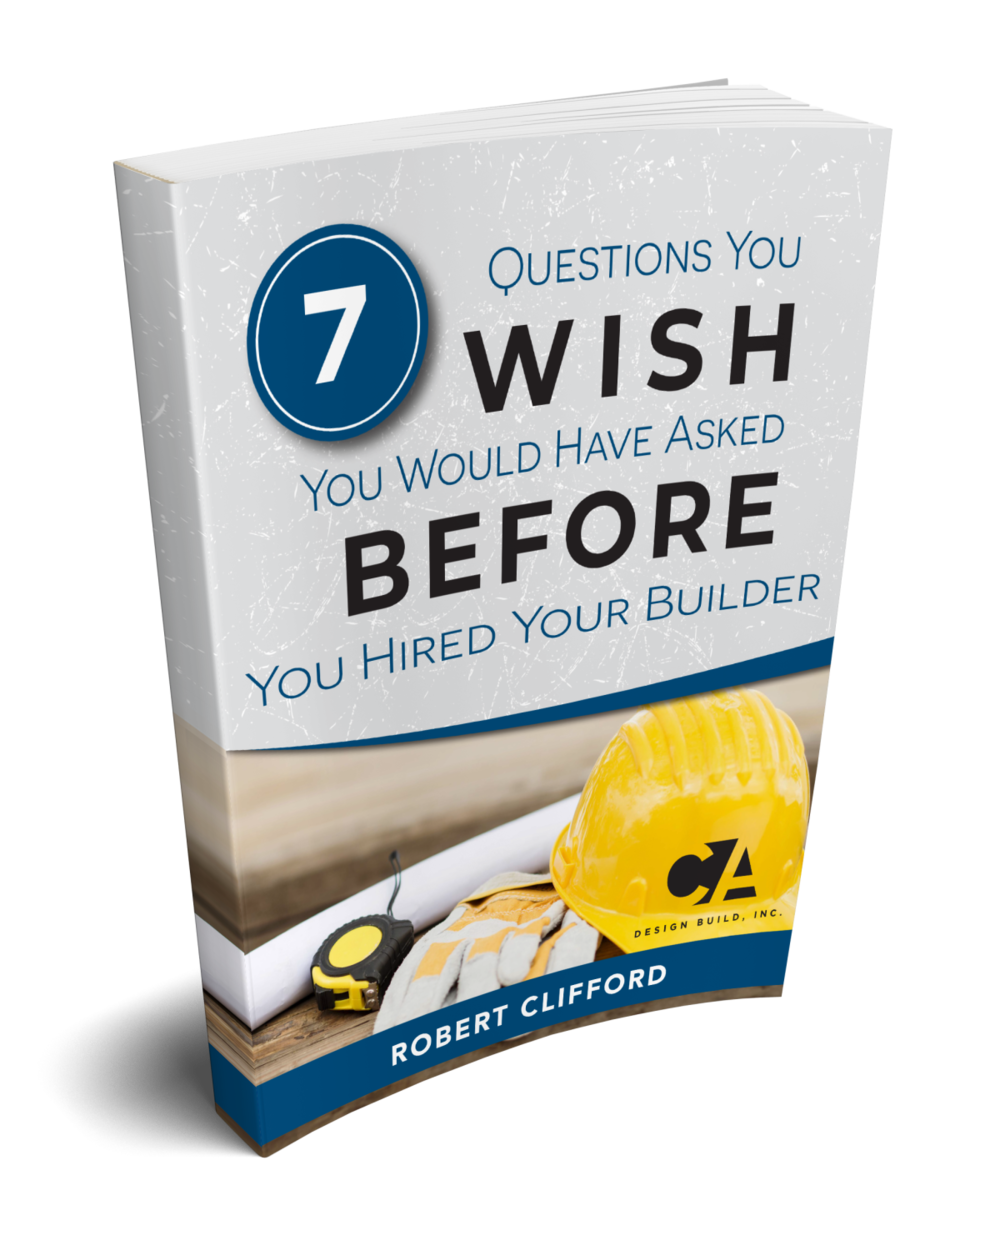 Get the checklist you need to hire the best builder for your job. - Sign up for the CA Design Build newsletter to receive this invaluable resource - the 7 Questions You Wish You Would Have Asked Before You Hired Your Builder eBook.